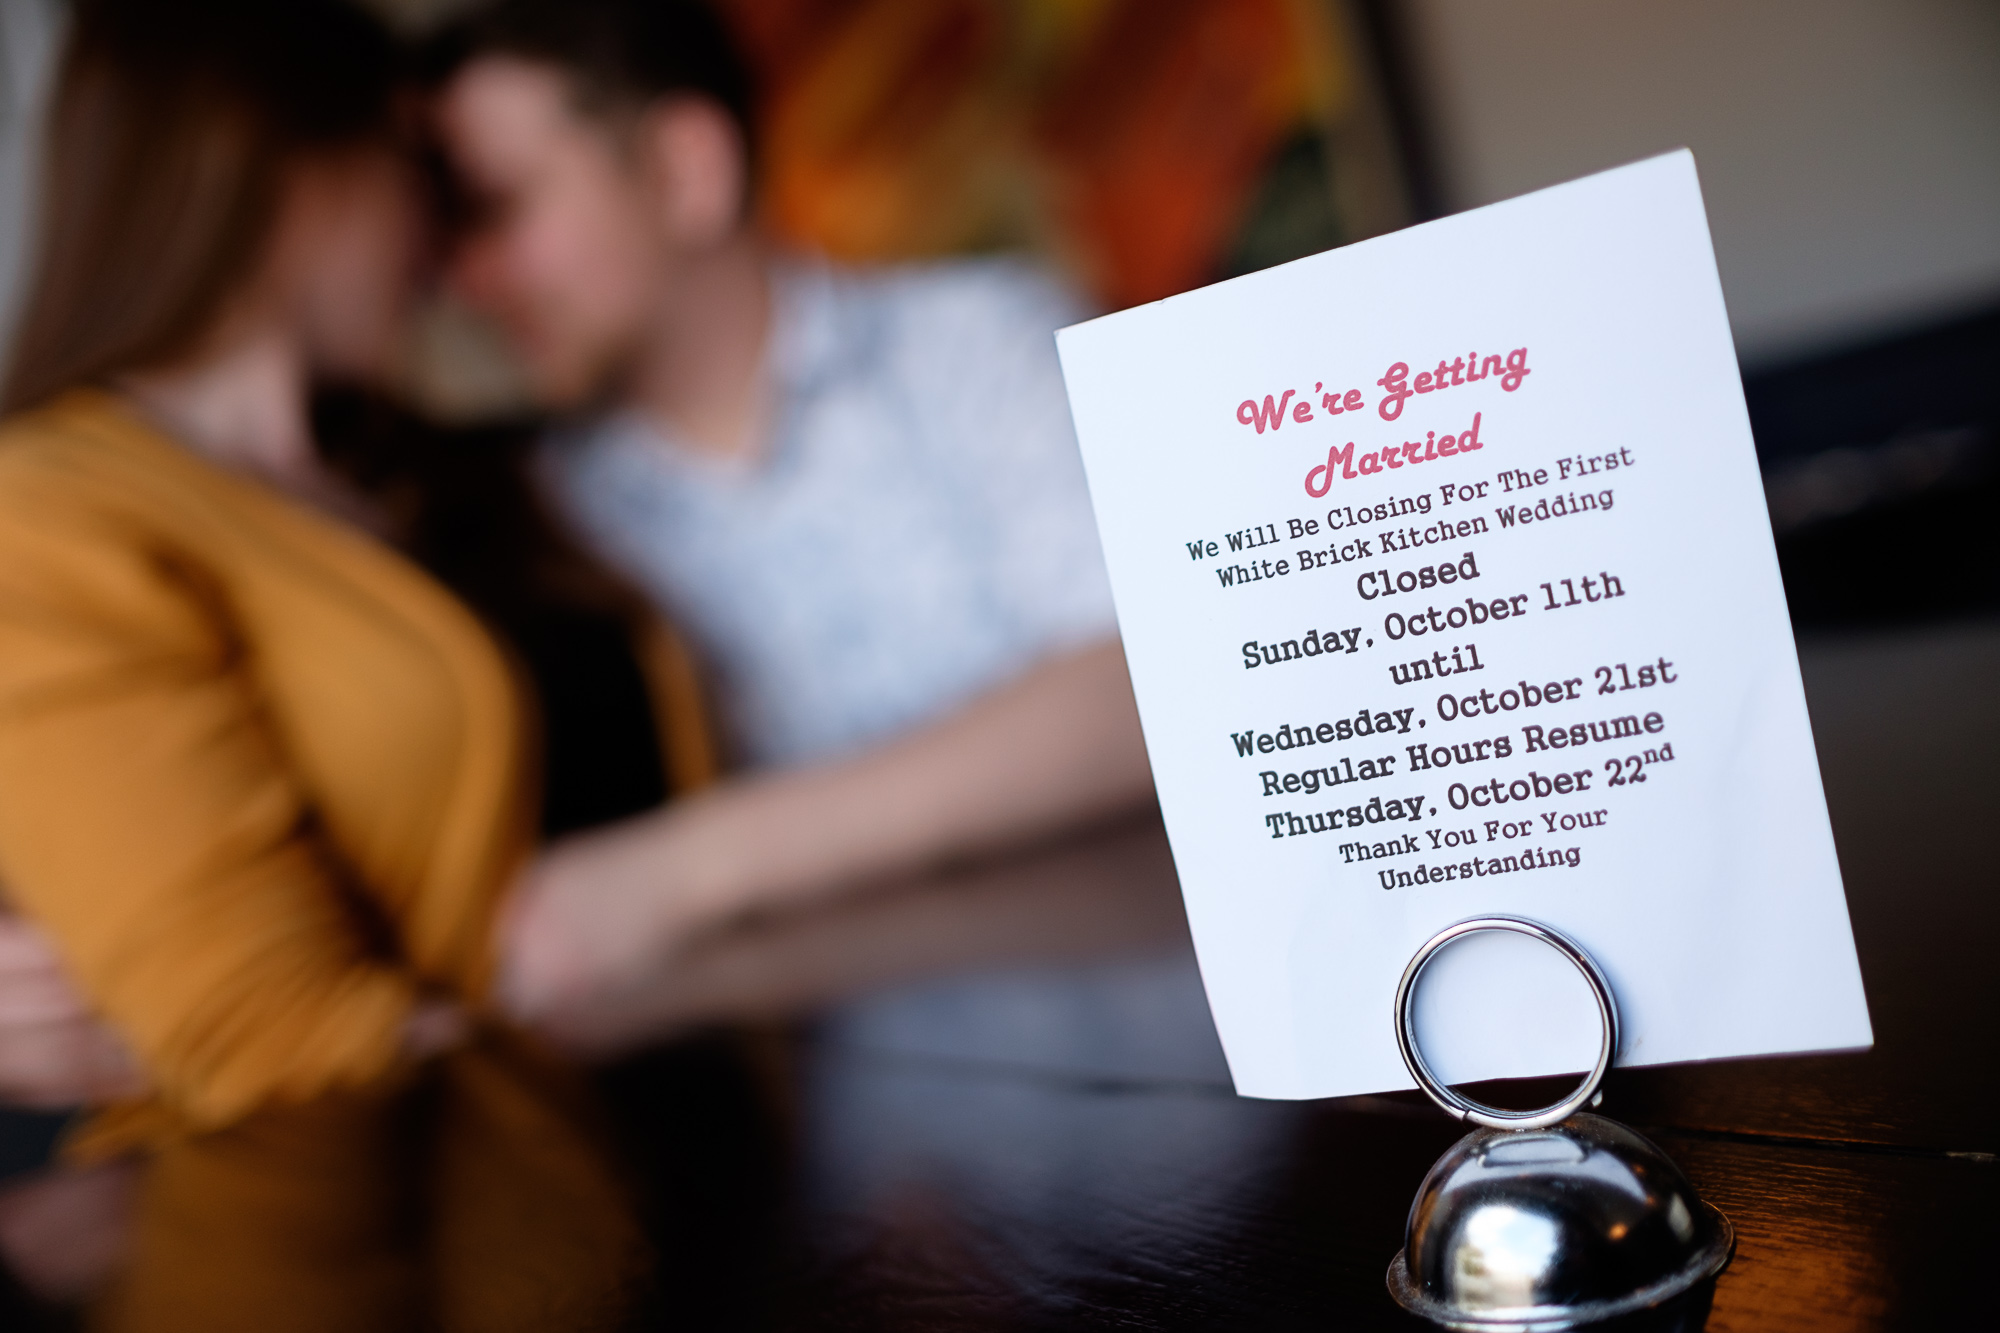 An engagement photograph from Haley + Stephen's engagement pictures in their restaurant in Toronto.